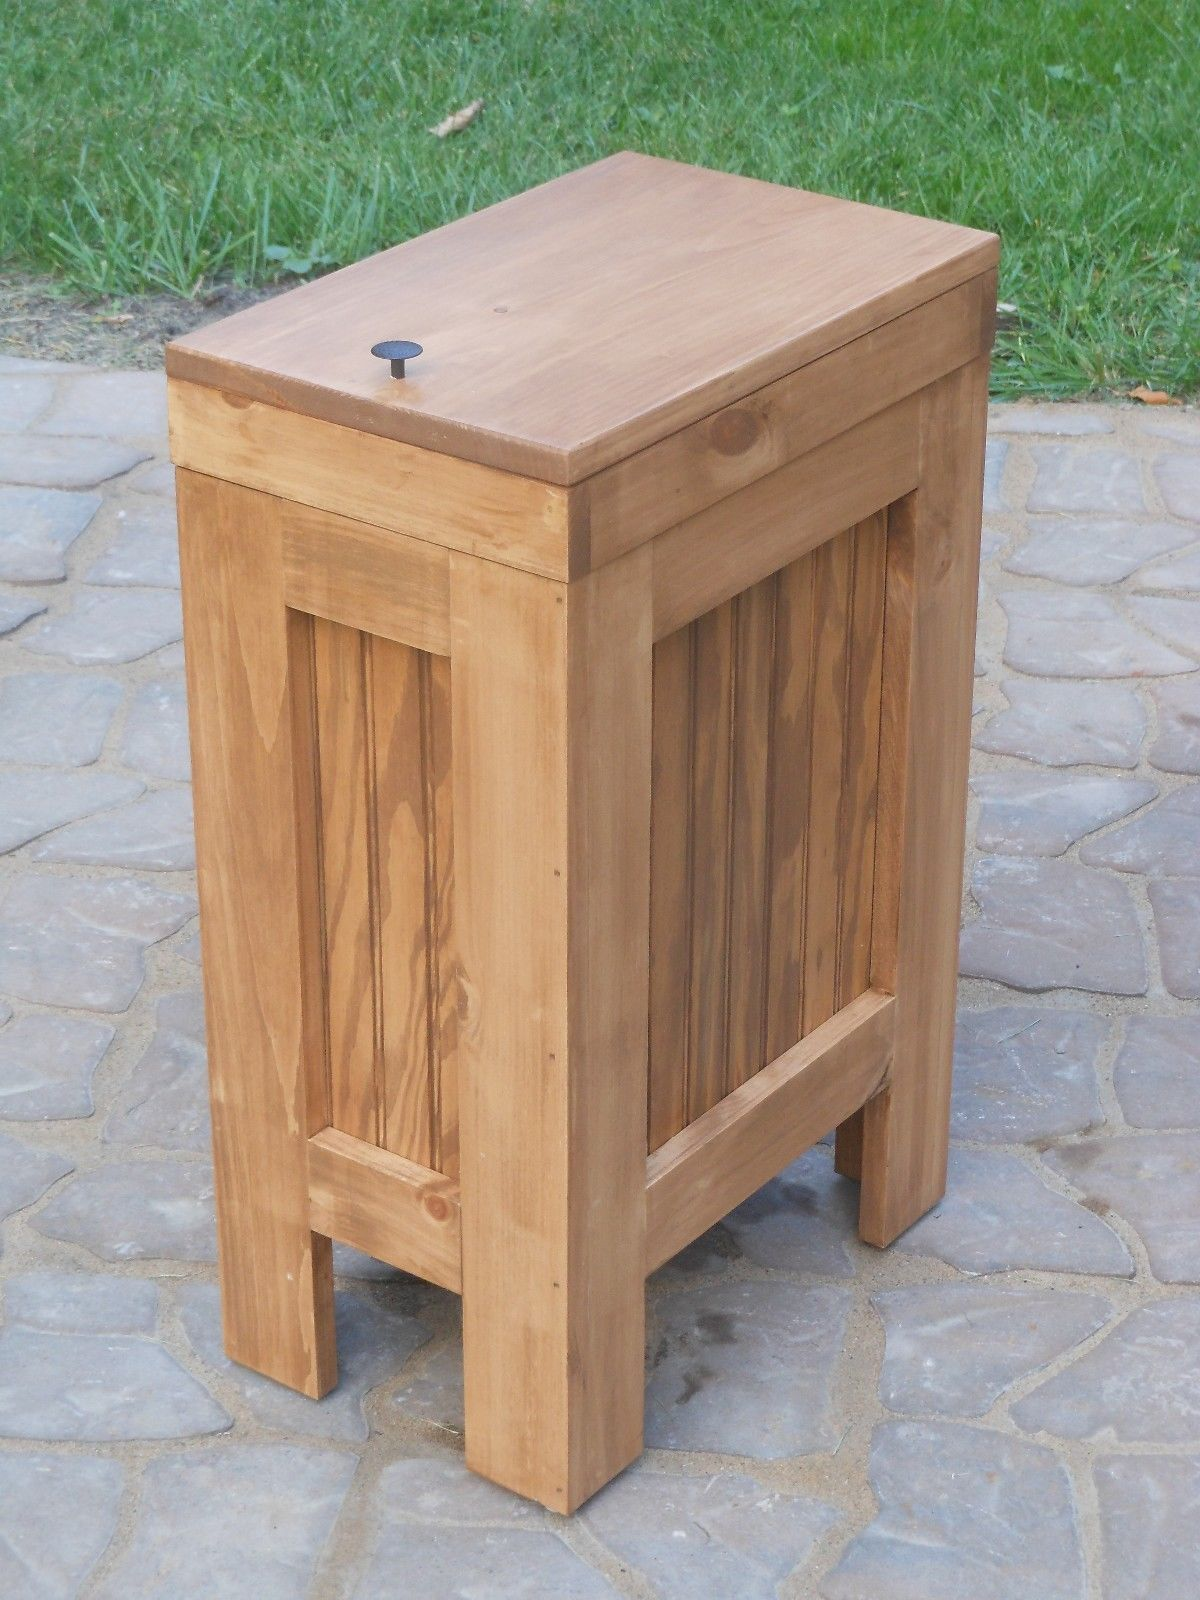 WOOD WOODEN KITCHEN TRASH CAN Wastebasket RECYCLING BIN HANDCRAFTED IN USA  ! NEW